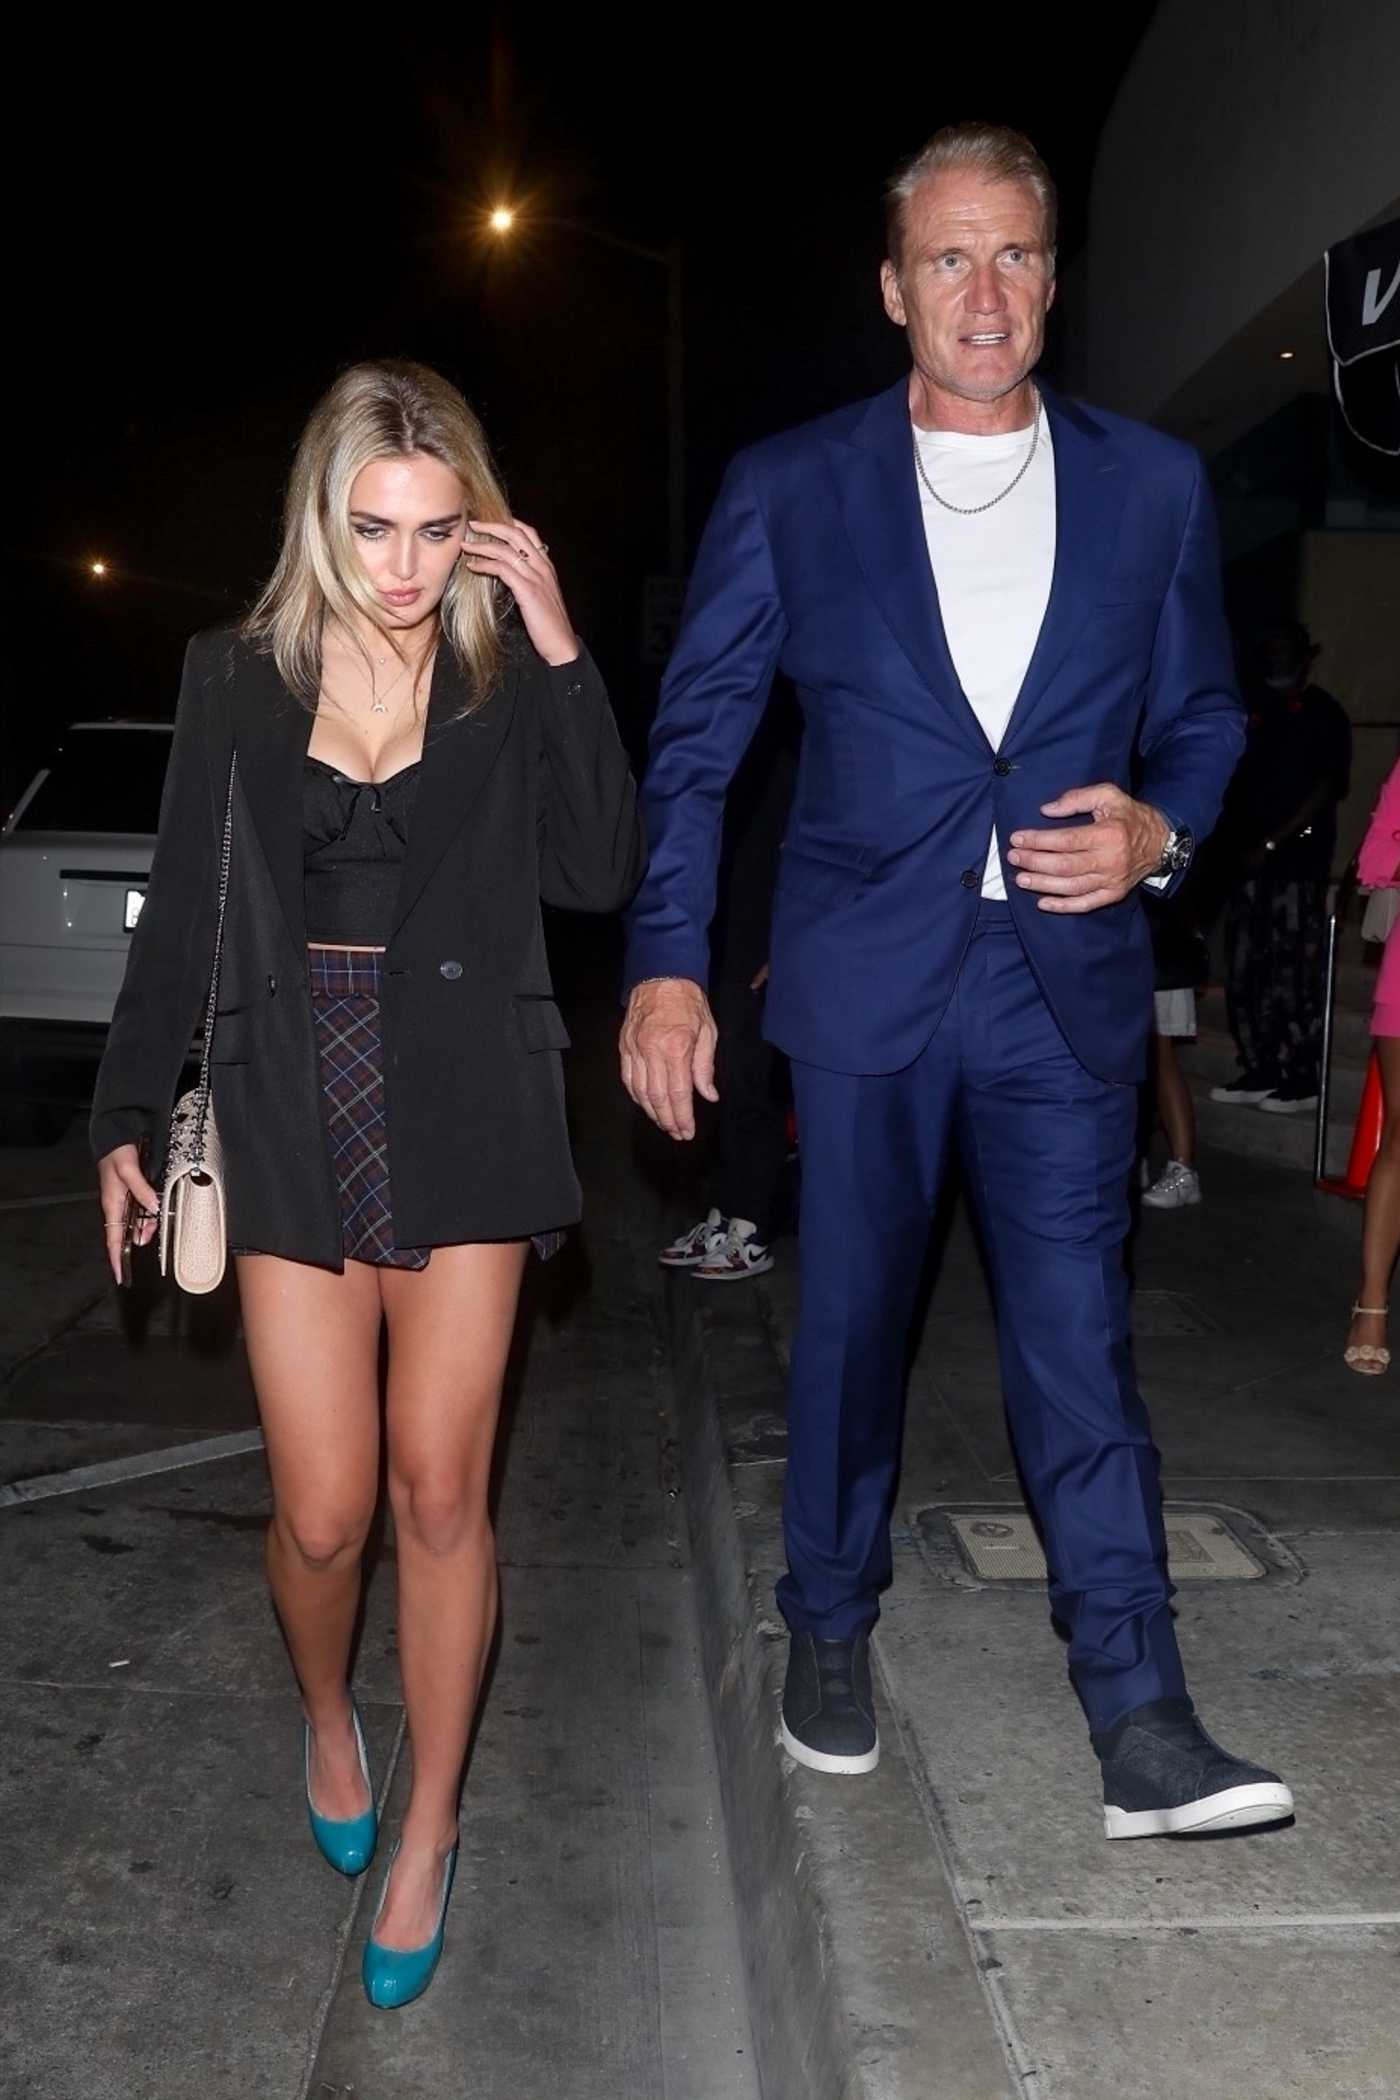 Dolph Lundgren in a Blue Suit Arrives for Dinner at Catch LA Out with Emma Krokdal in West Hollywood 07/31/2021